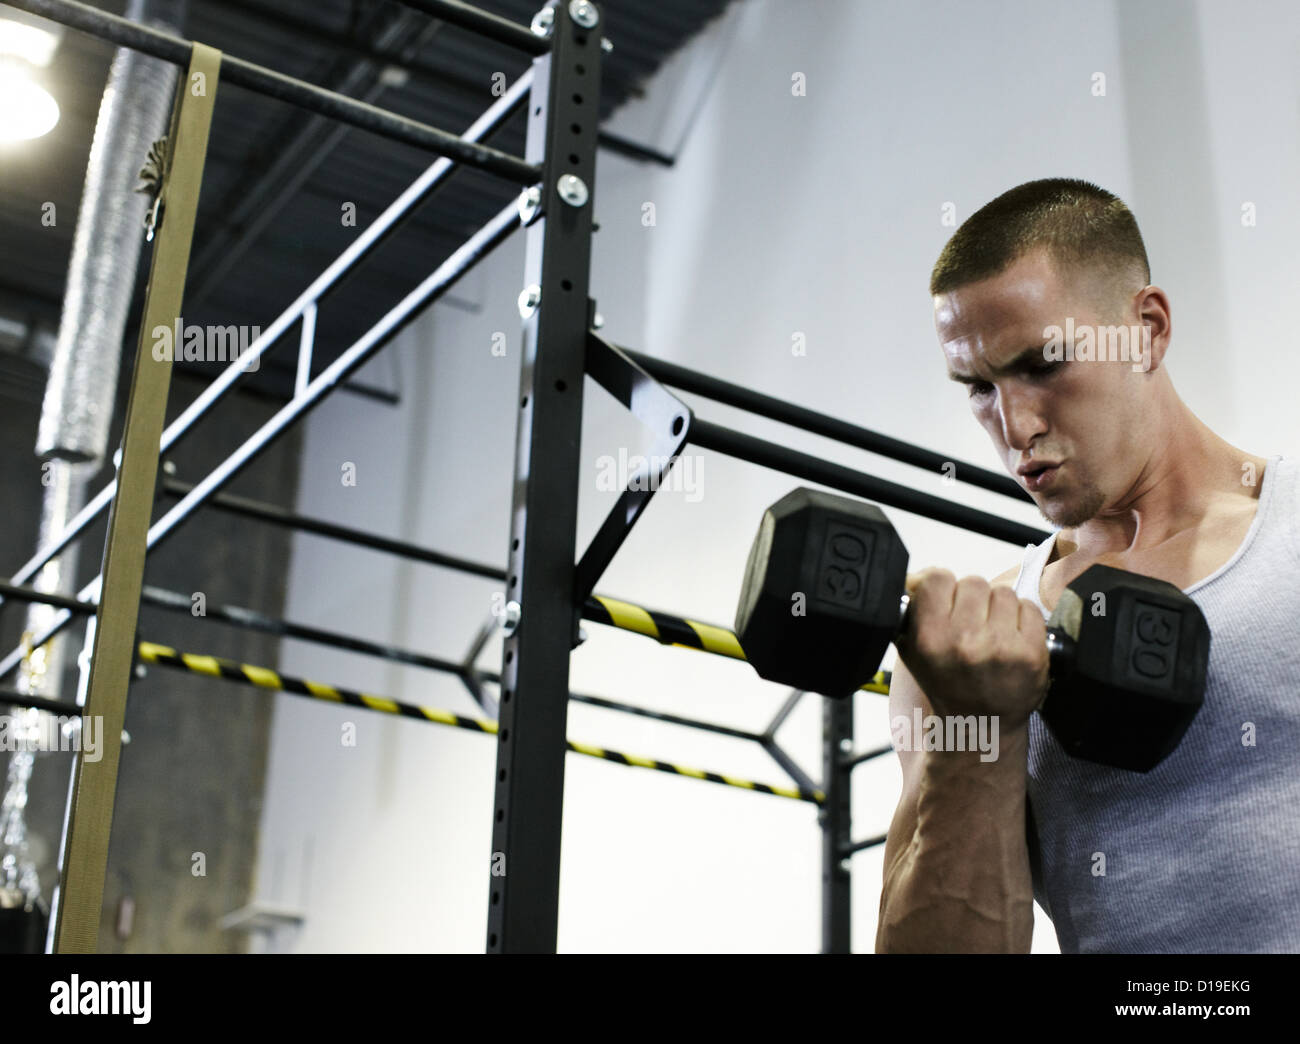 Man doing biceps in gym Photo Stock